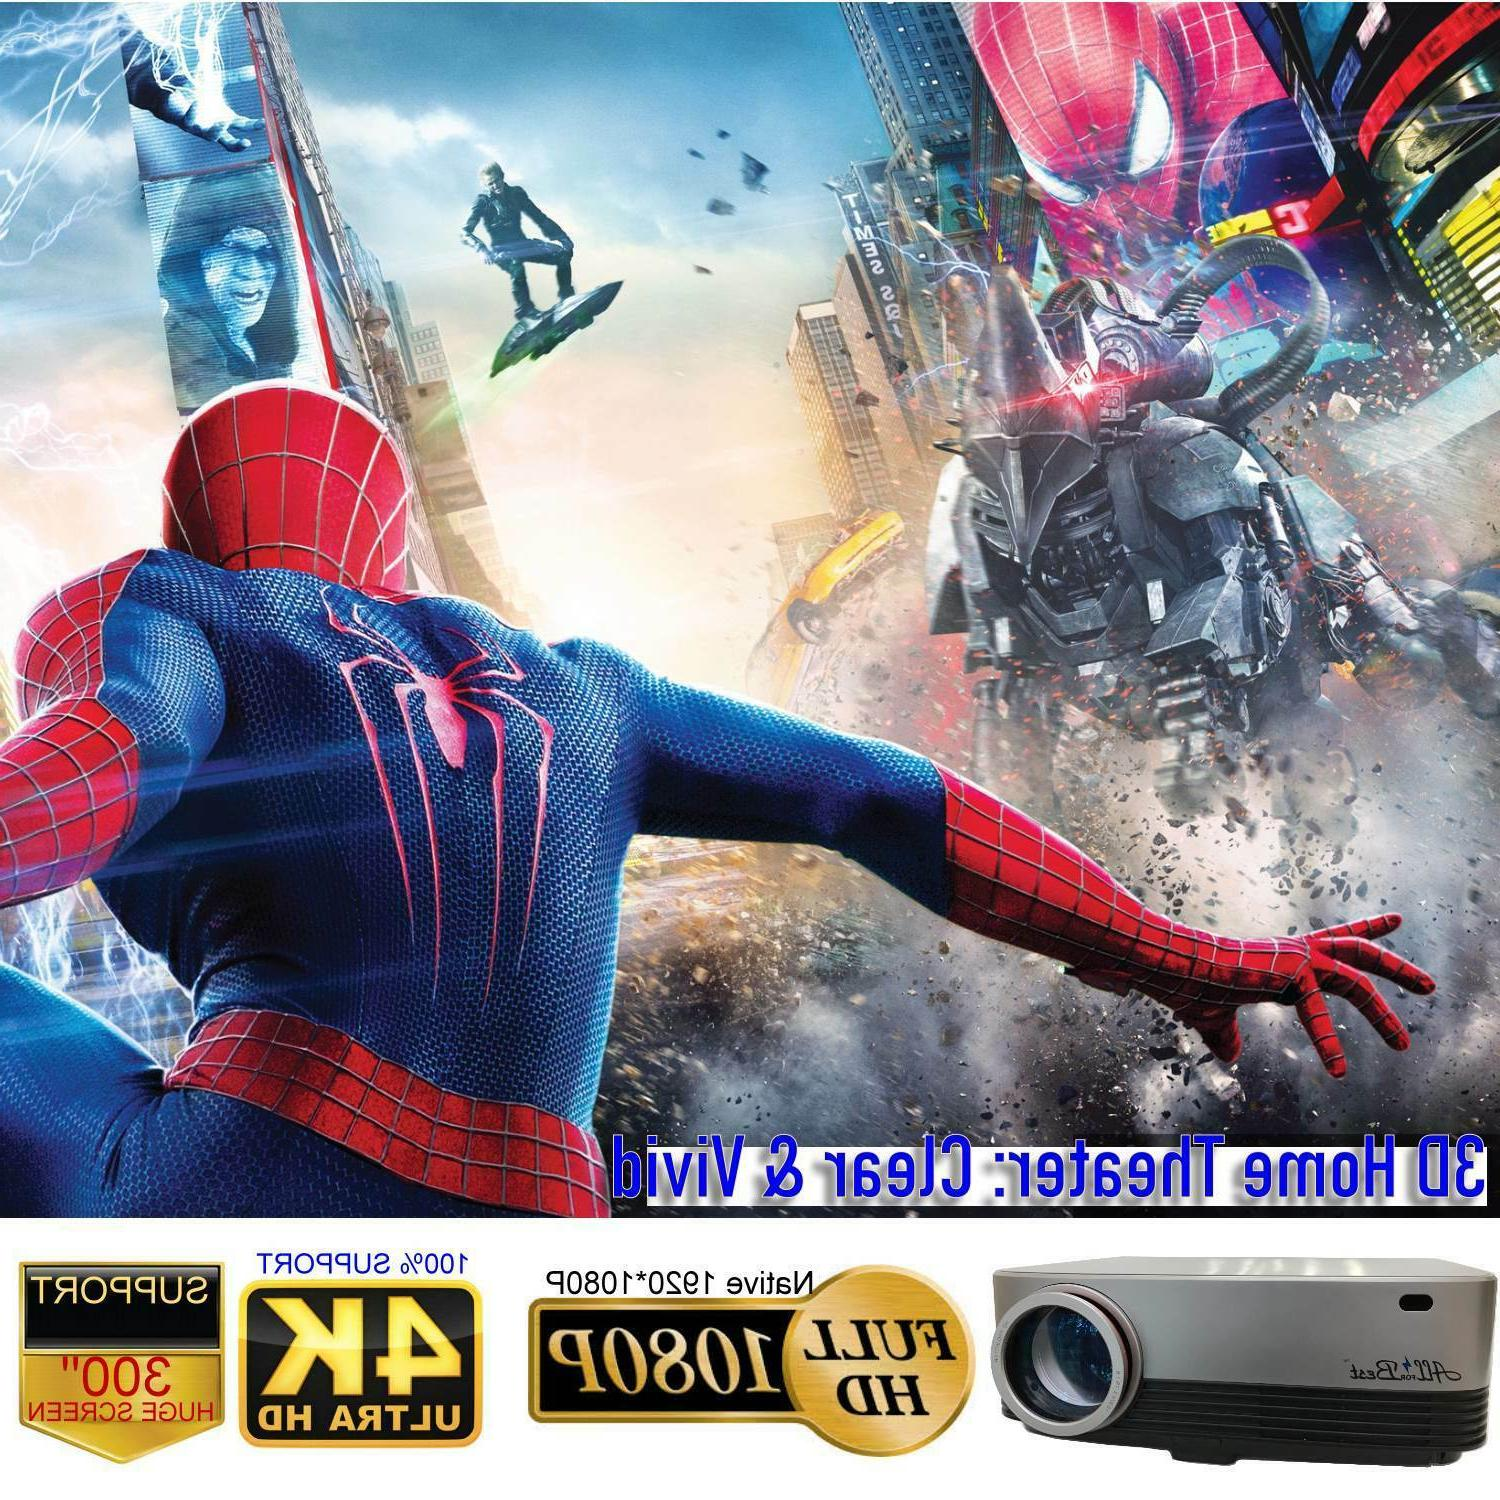 AllForBest 1080P Projector Support 4K for Theater